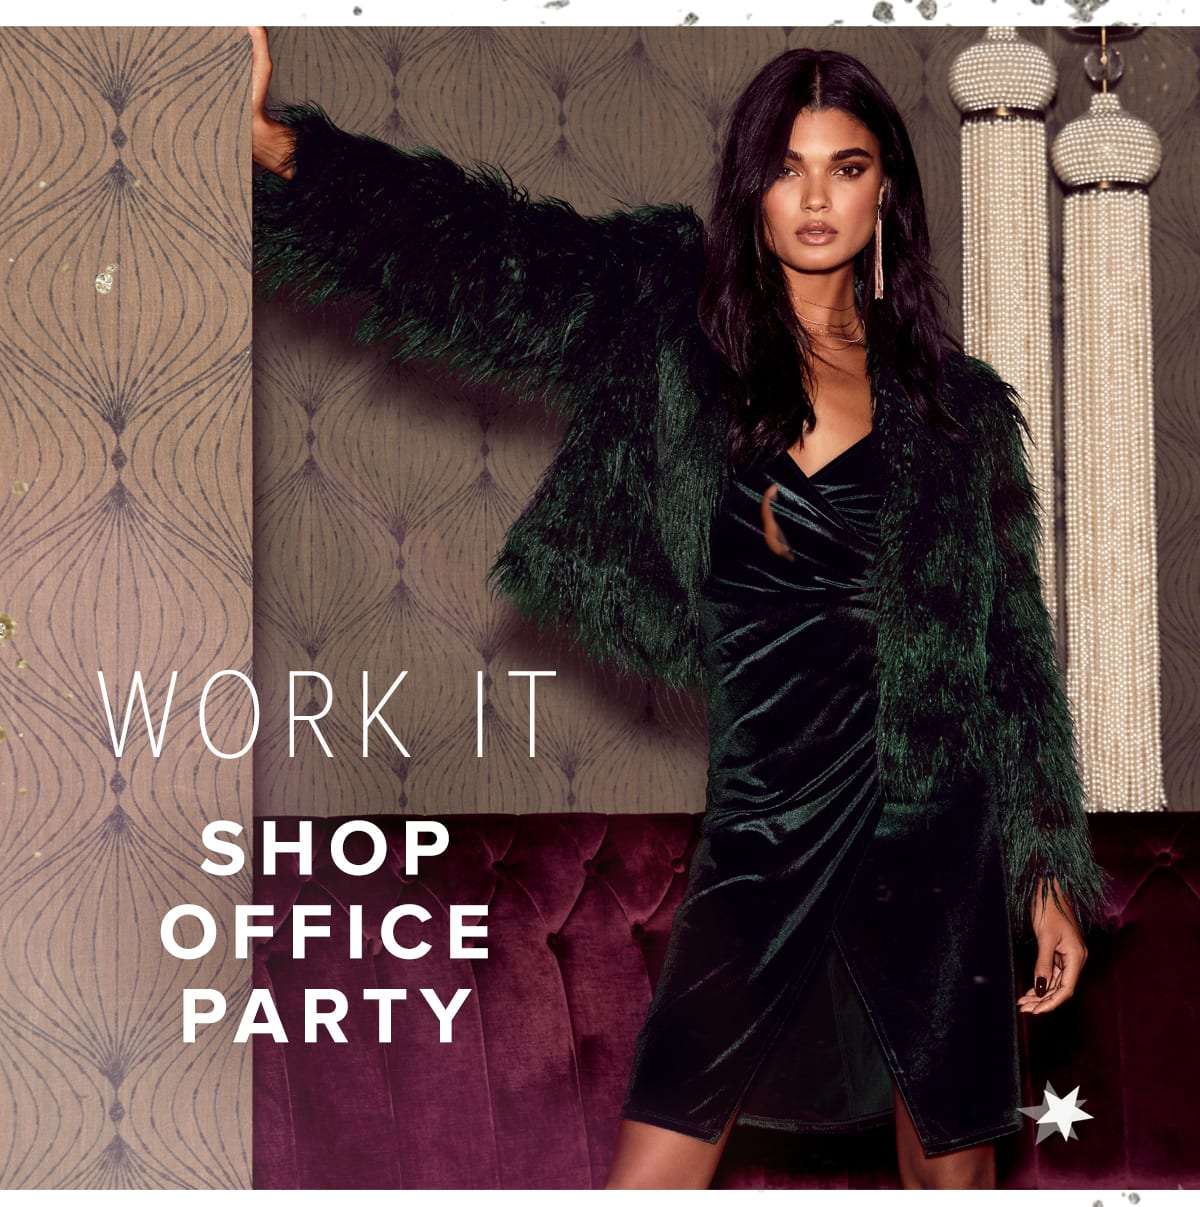 Shop Office Party Dresses, Long Dresses, and Separates for Women.